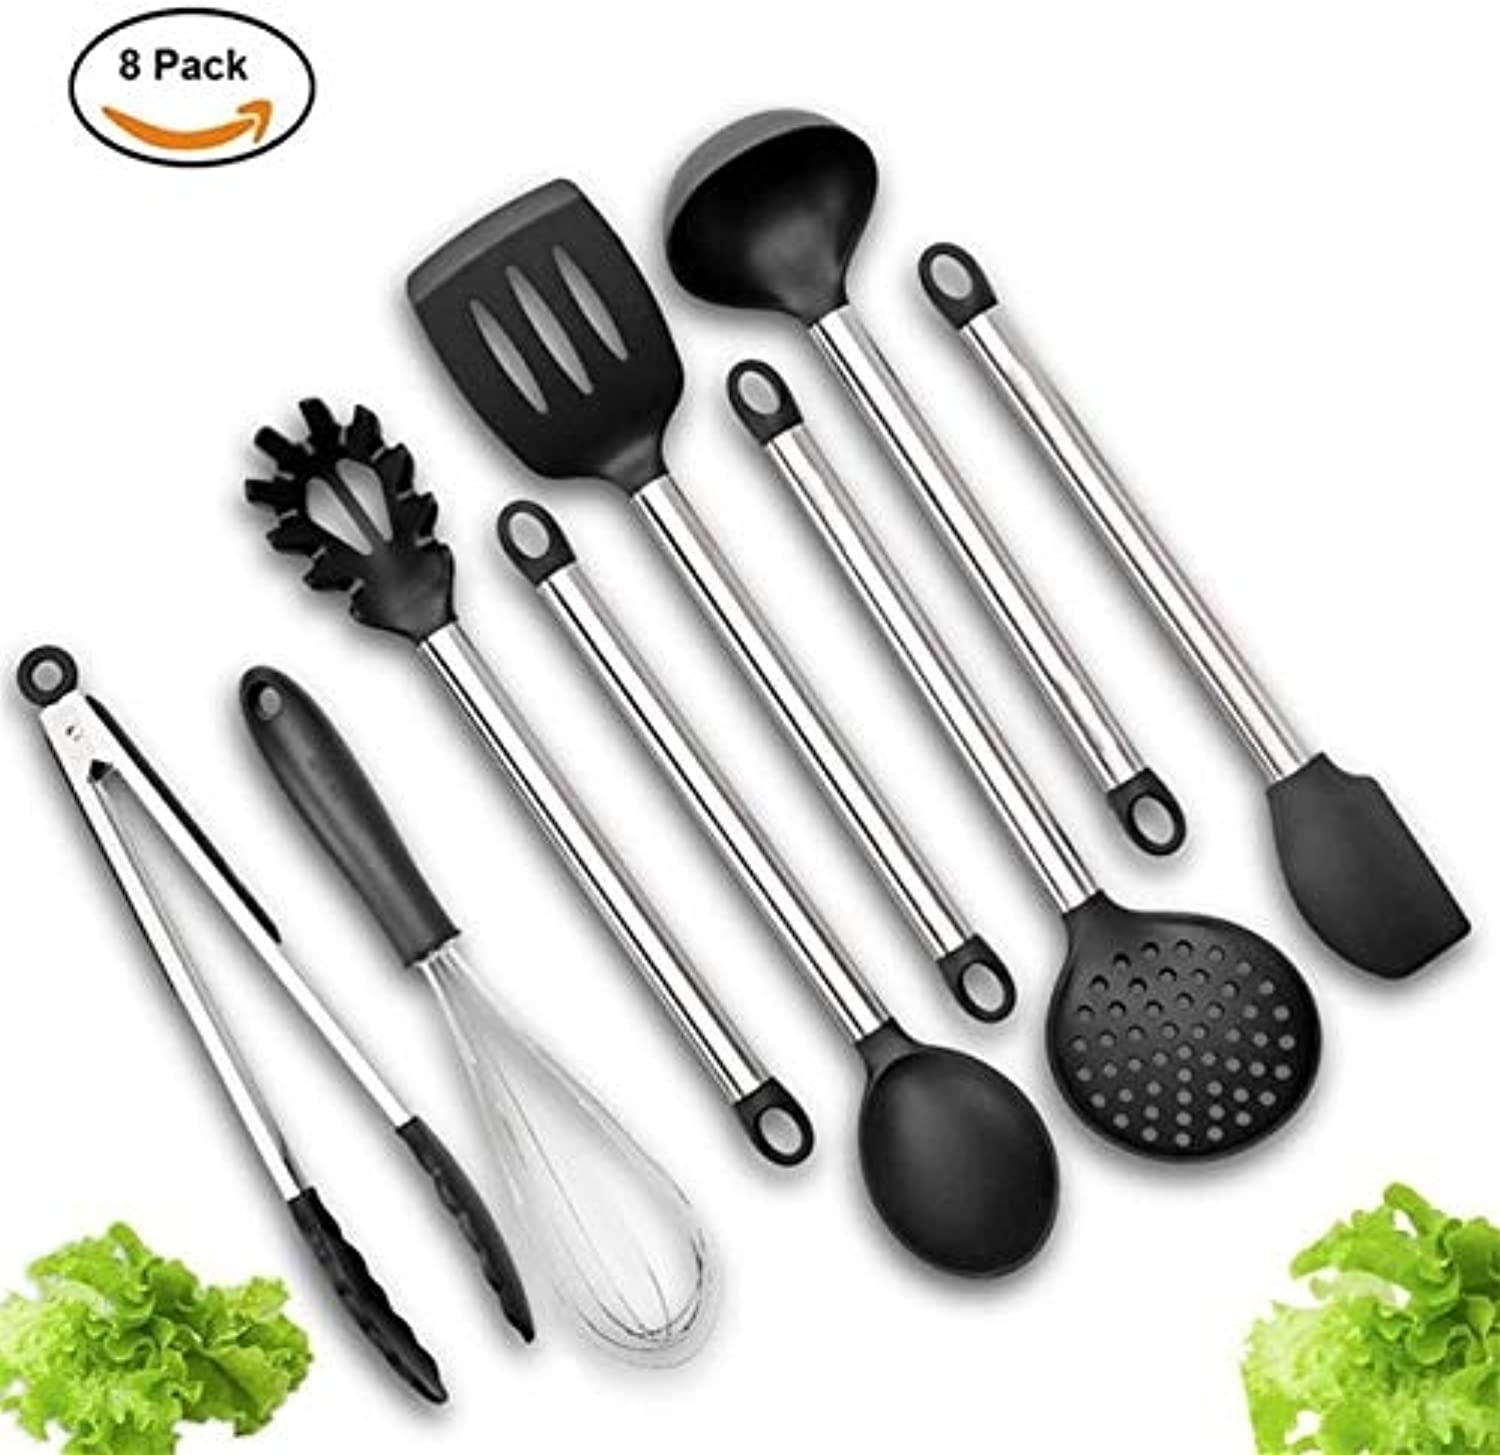 Farmerly Kitchen Cooking Utensils Set of 8 Pieces Premium Heat Resistant Baking Tools Kitchen Cooking Utensils  GH40   8 Pieces